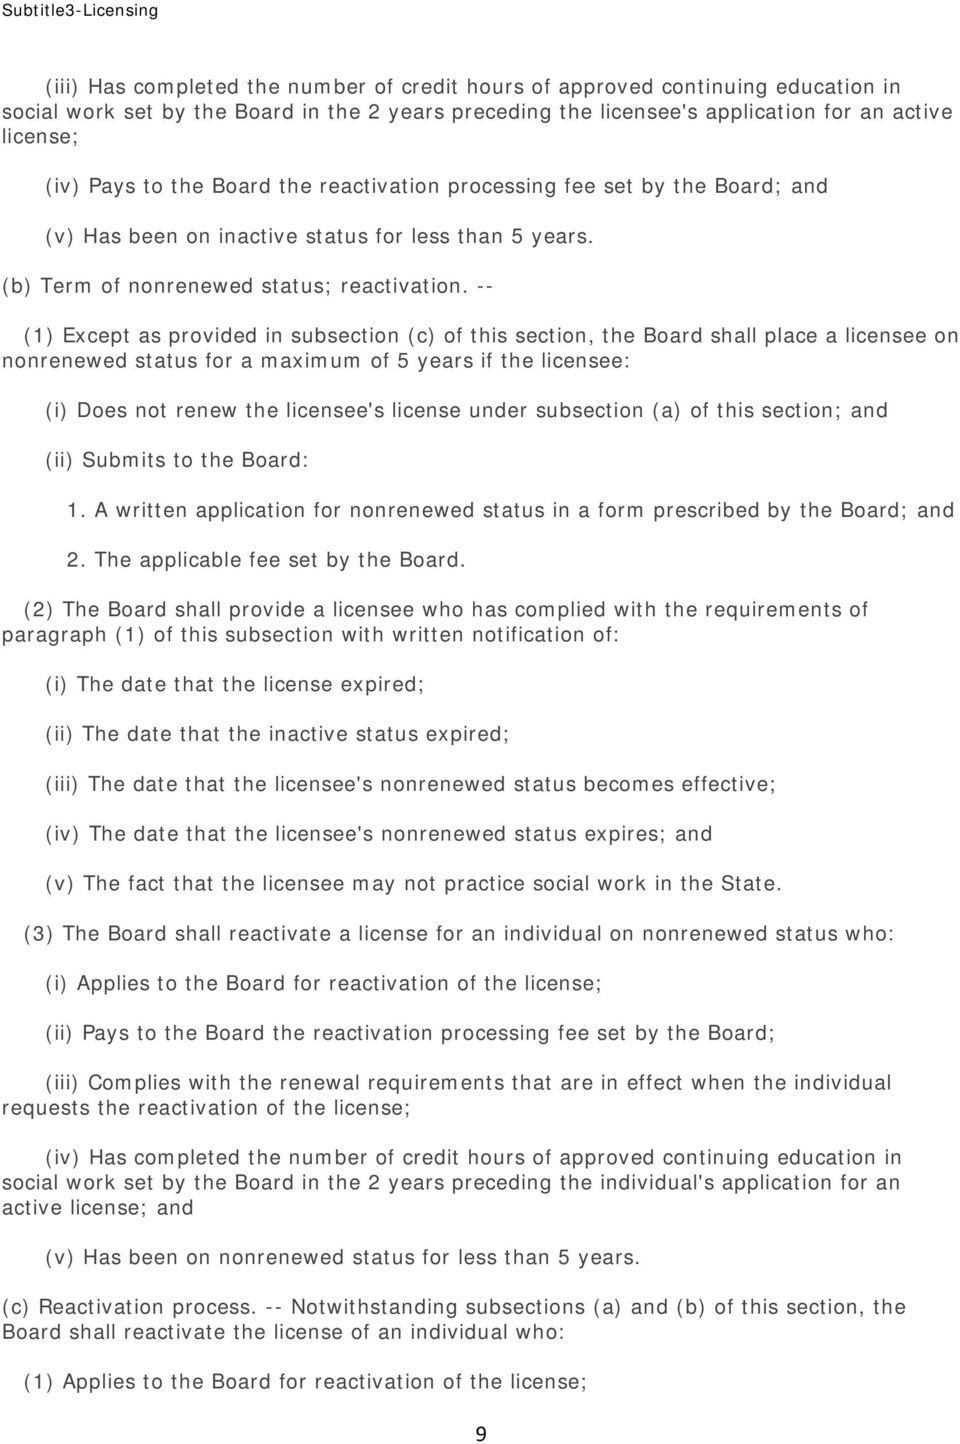 -- (1) Except as provided in subsection (c) of this section, the Board shall place a licensee on nonrenewed status for a maximum of 5 years if the licensee: (i) Does not renew the licensee's license